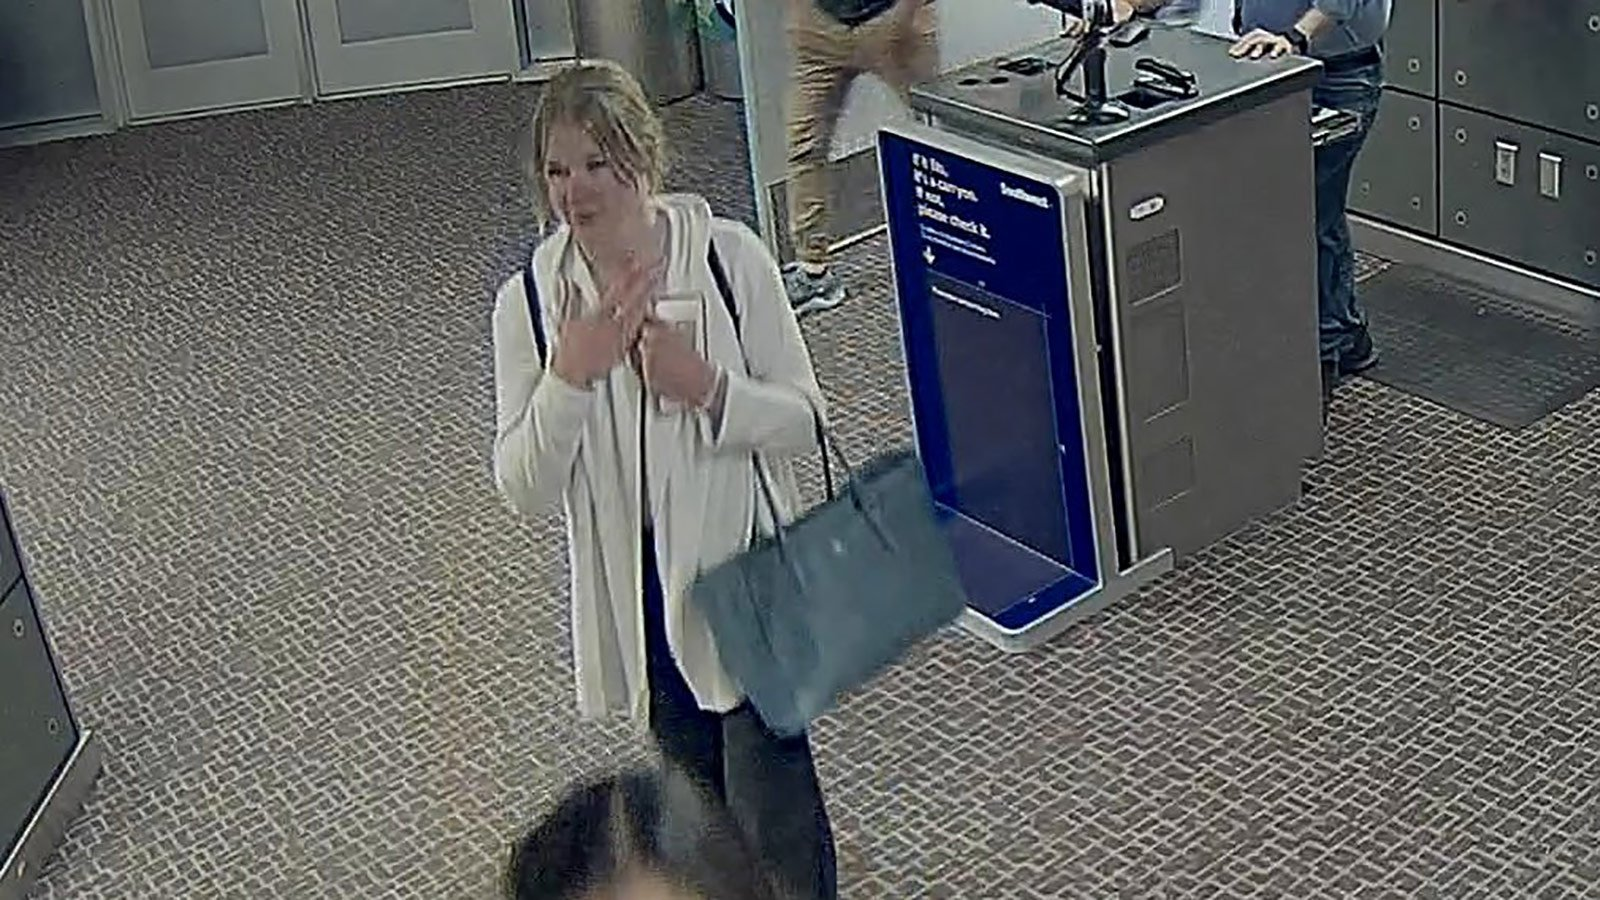 Mackenzie Lueck, 23, captured on security cameras at Salt Lake City International Airport.